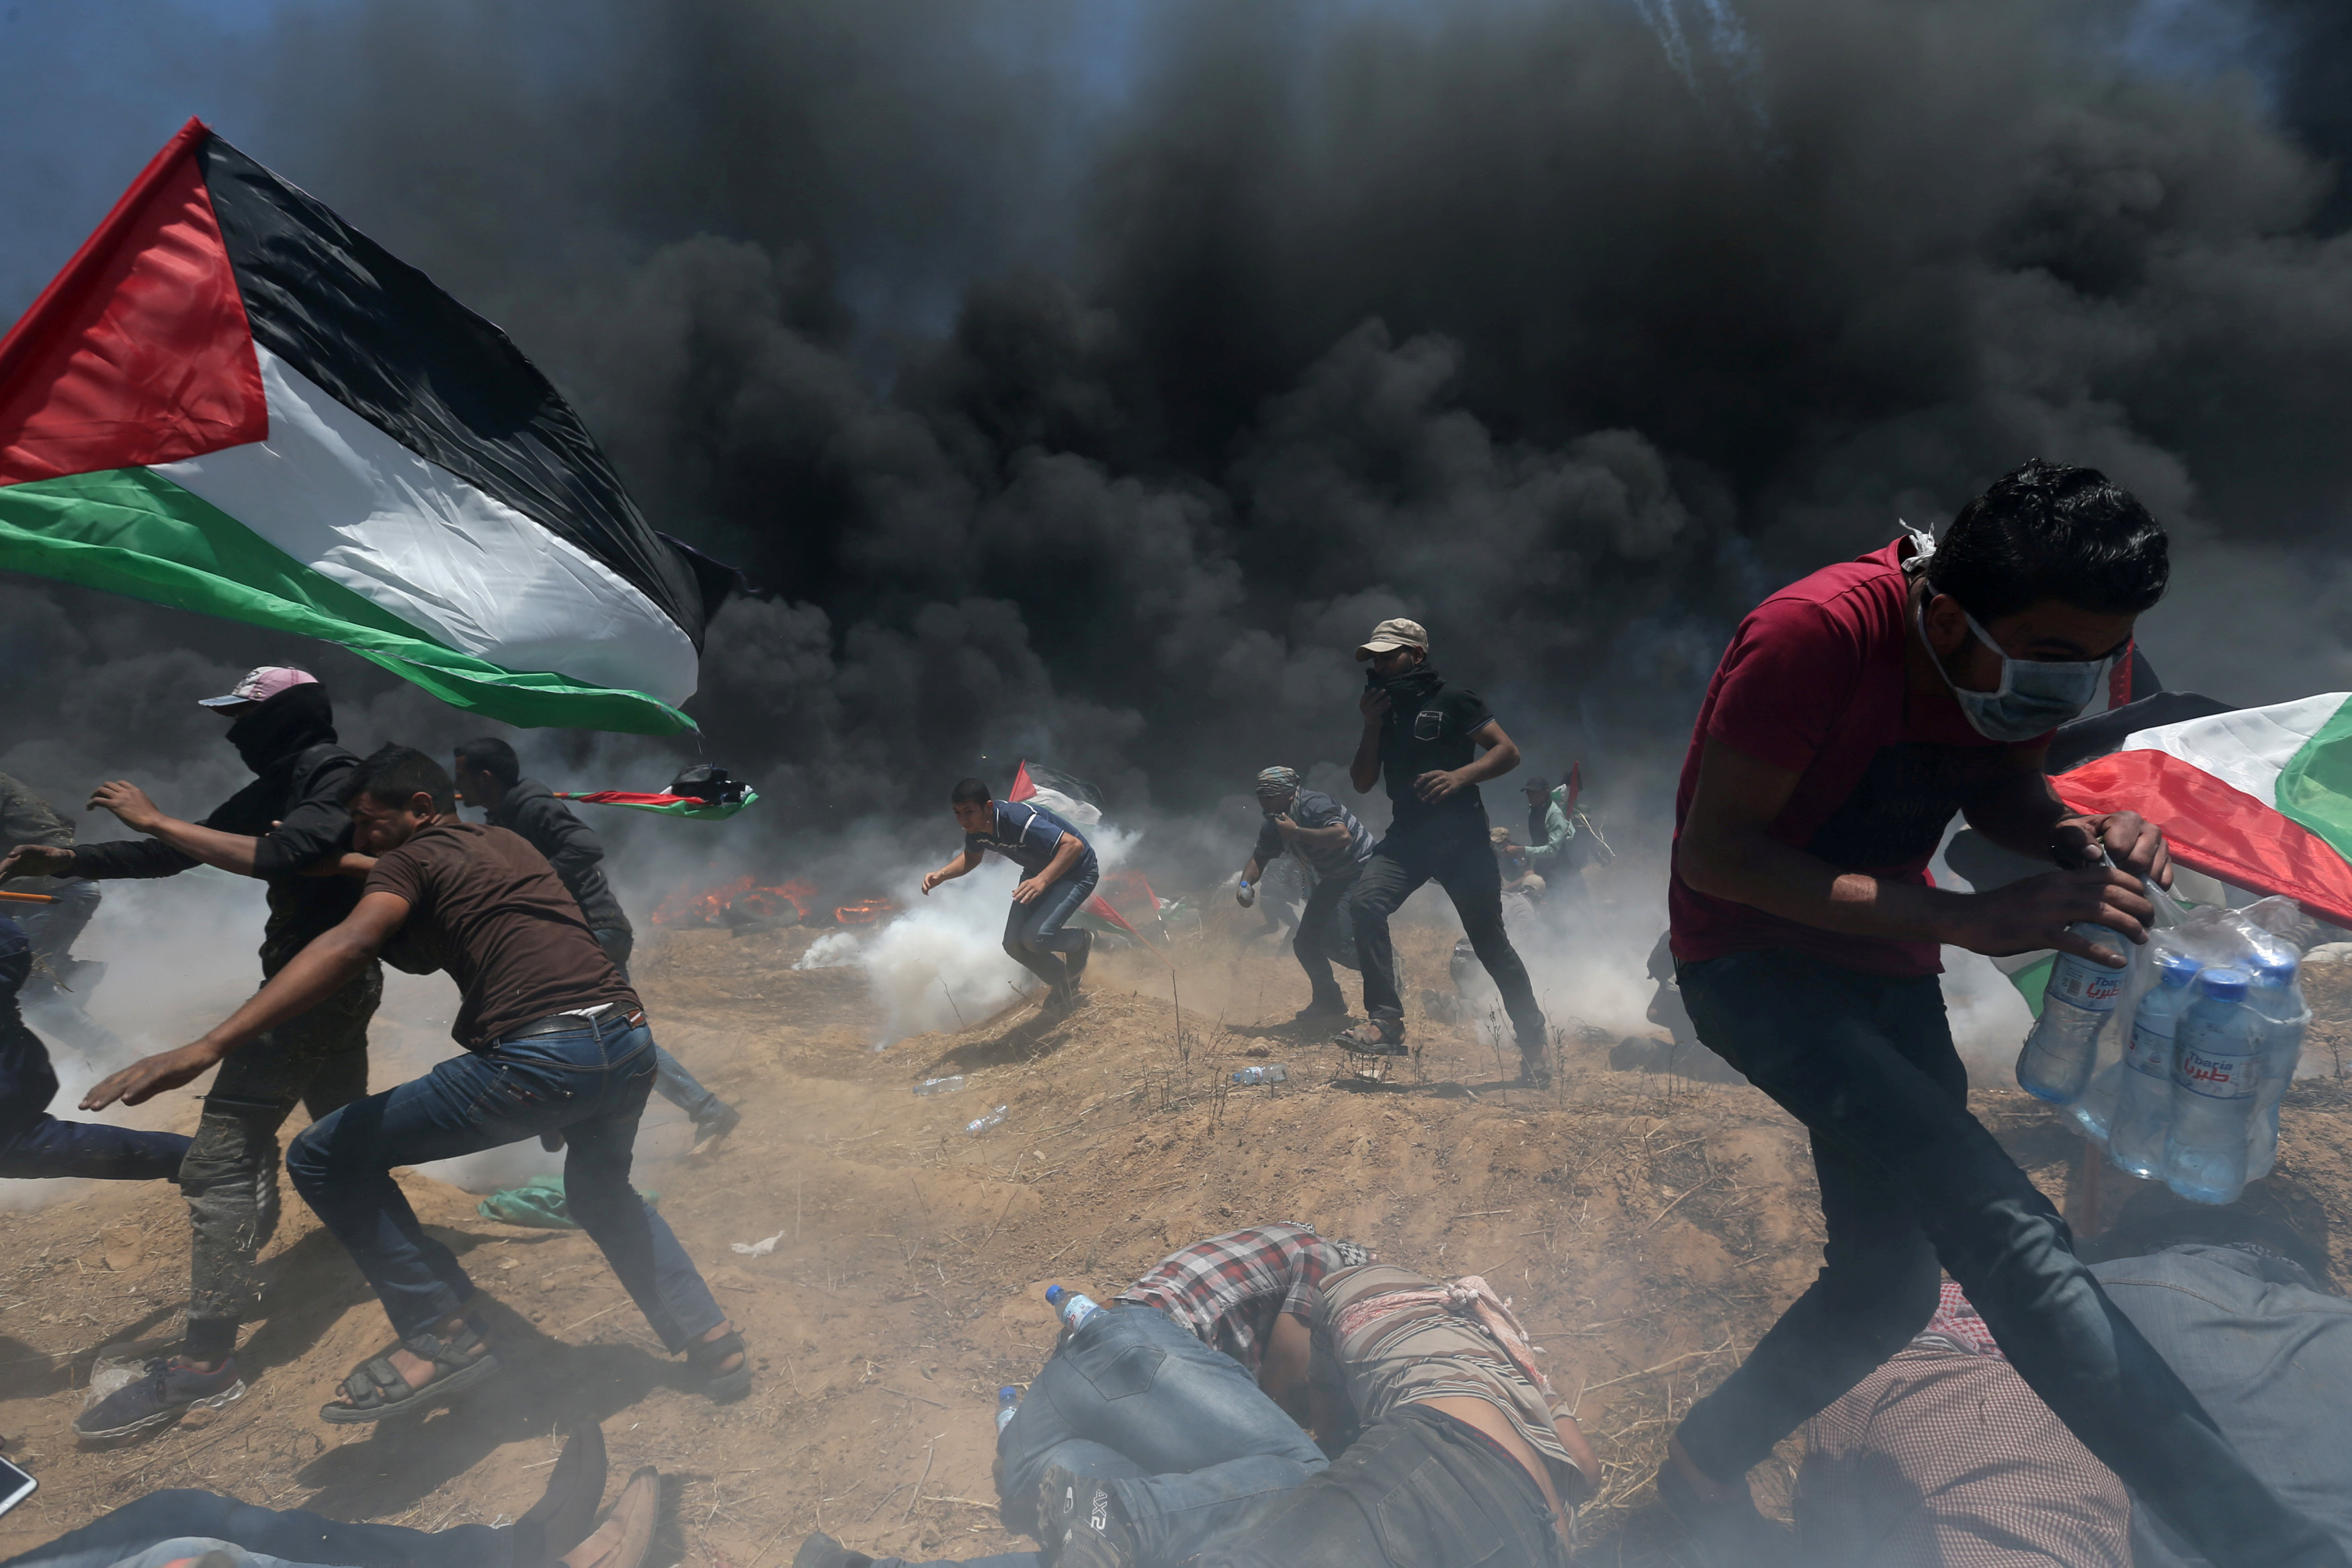 Palestinian demonstrators run for cover from Israeli fire and tear gas during a protest against U.S. embassy move to Jerusalem and ahead of the 70th anniversary of Nakba, at the Israel-Gaza border in the southern Gaza Strip May 14, 2018. REUTERS/Ibraheem Abu Mustafa